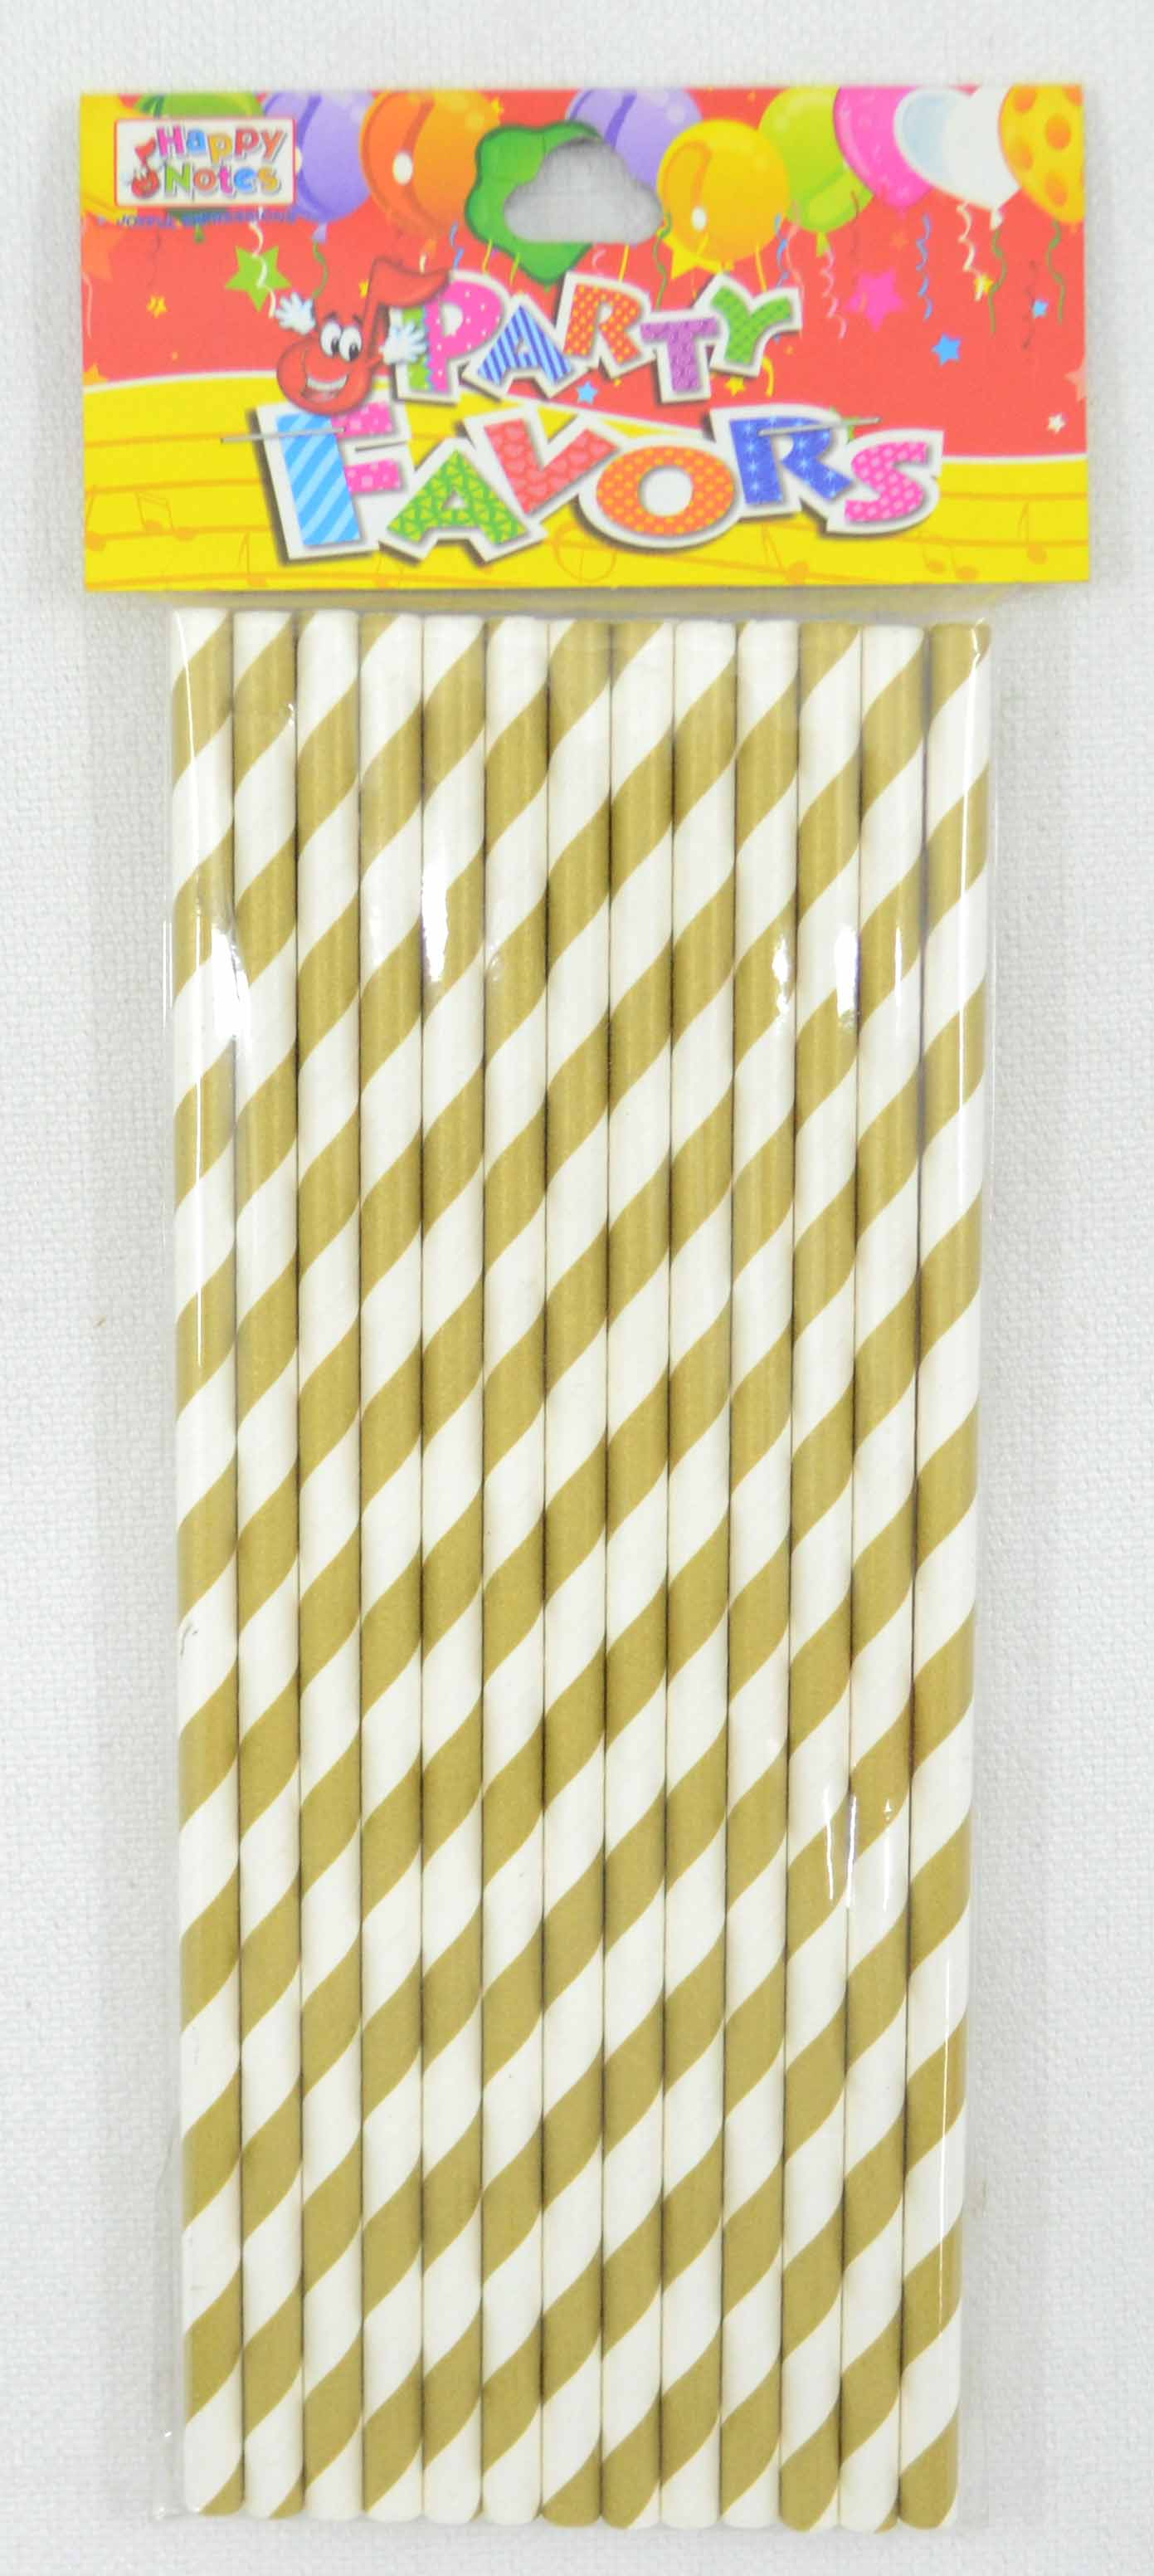 Paper Drinking Straw Metallic Colors